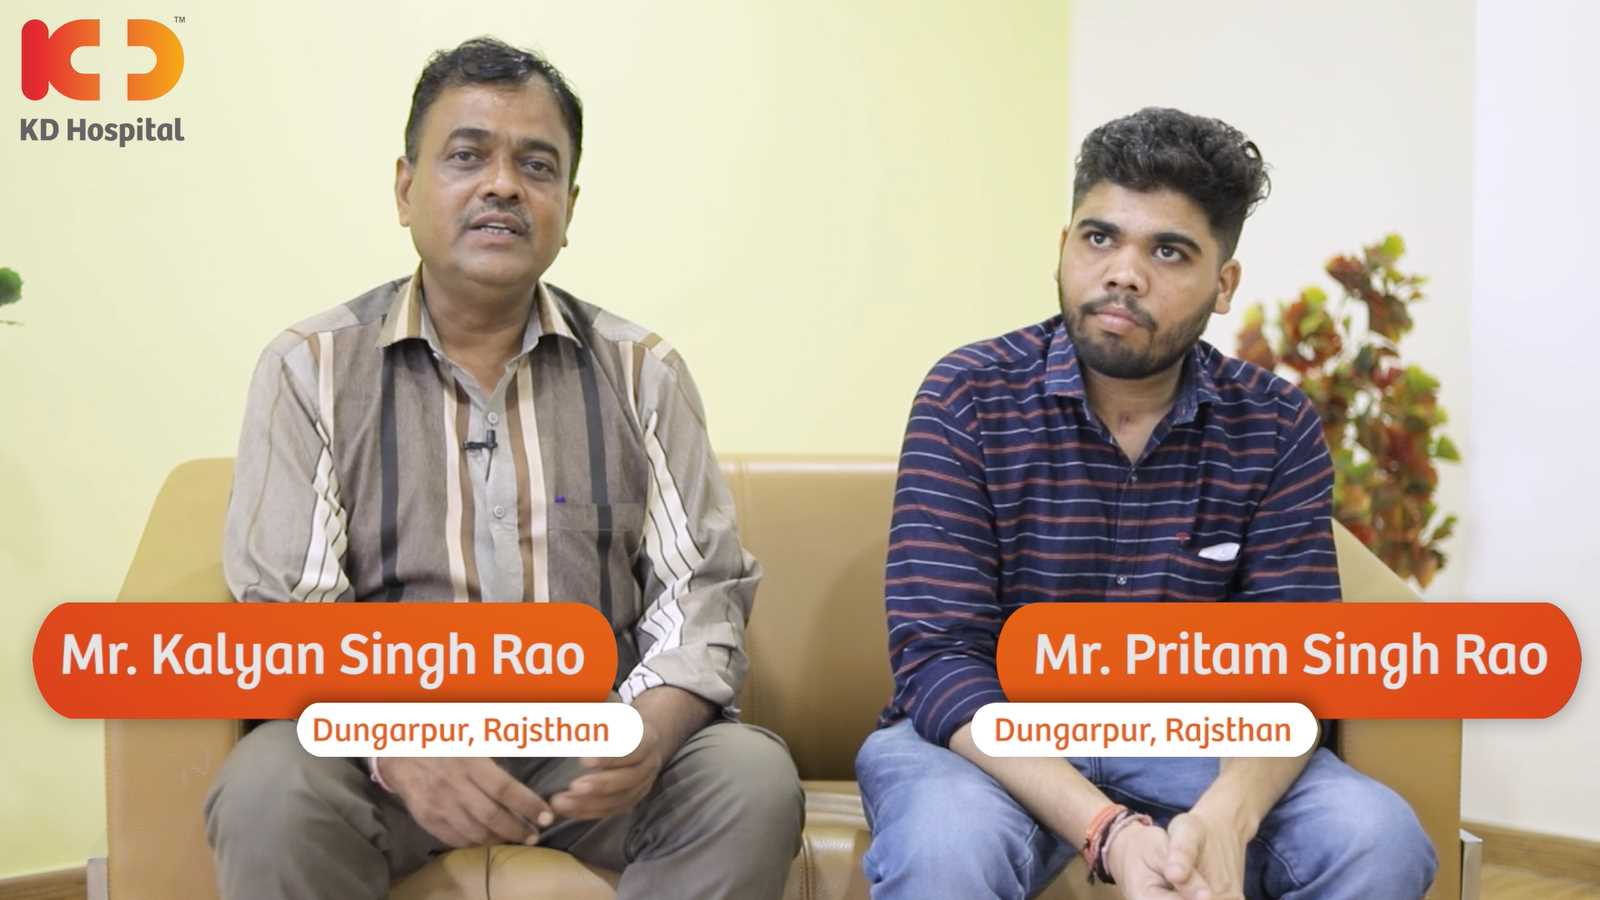 Hear our patient Pritam Singh Rao's story from his uncle about his recovery after tracheostomy and balloon dilatation performed by our ENT Surgeon Dr Hardik Shah.   #KDHospital #MultiSpecialtyHospital #PatientExperience #PatientCare #PatientSpeaks #Compassion #Doctors #Diagnosis #Therapeutics #goodhealth #patienttestimonial #patient #testimonial #testimony #soical #socialmediamarketing #digitalmarketing #wellness #wellnessthatworks #Ahmedabad #Gujarat #India